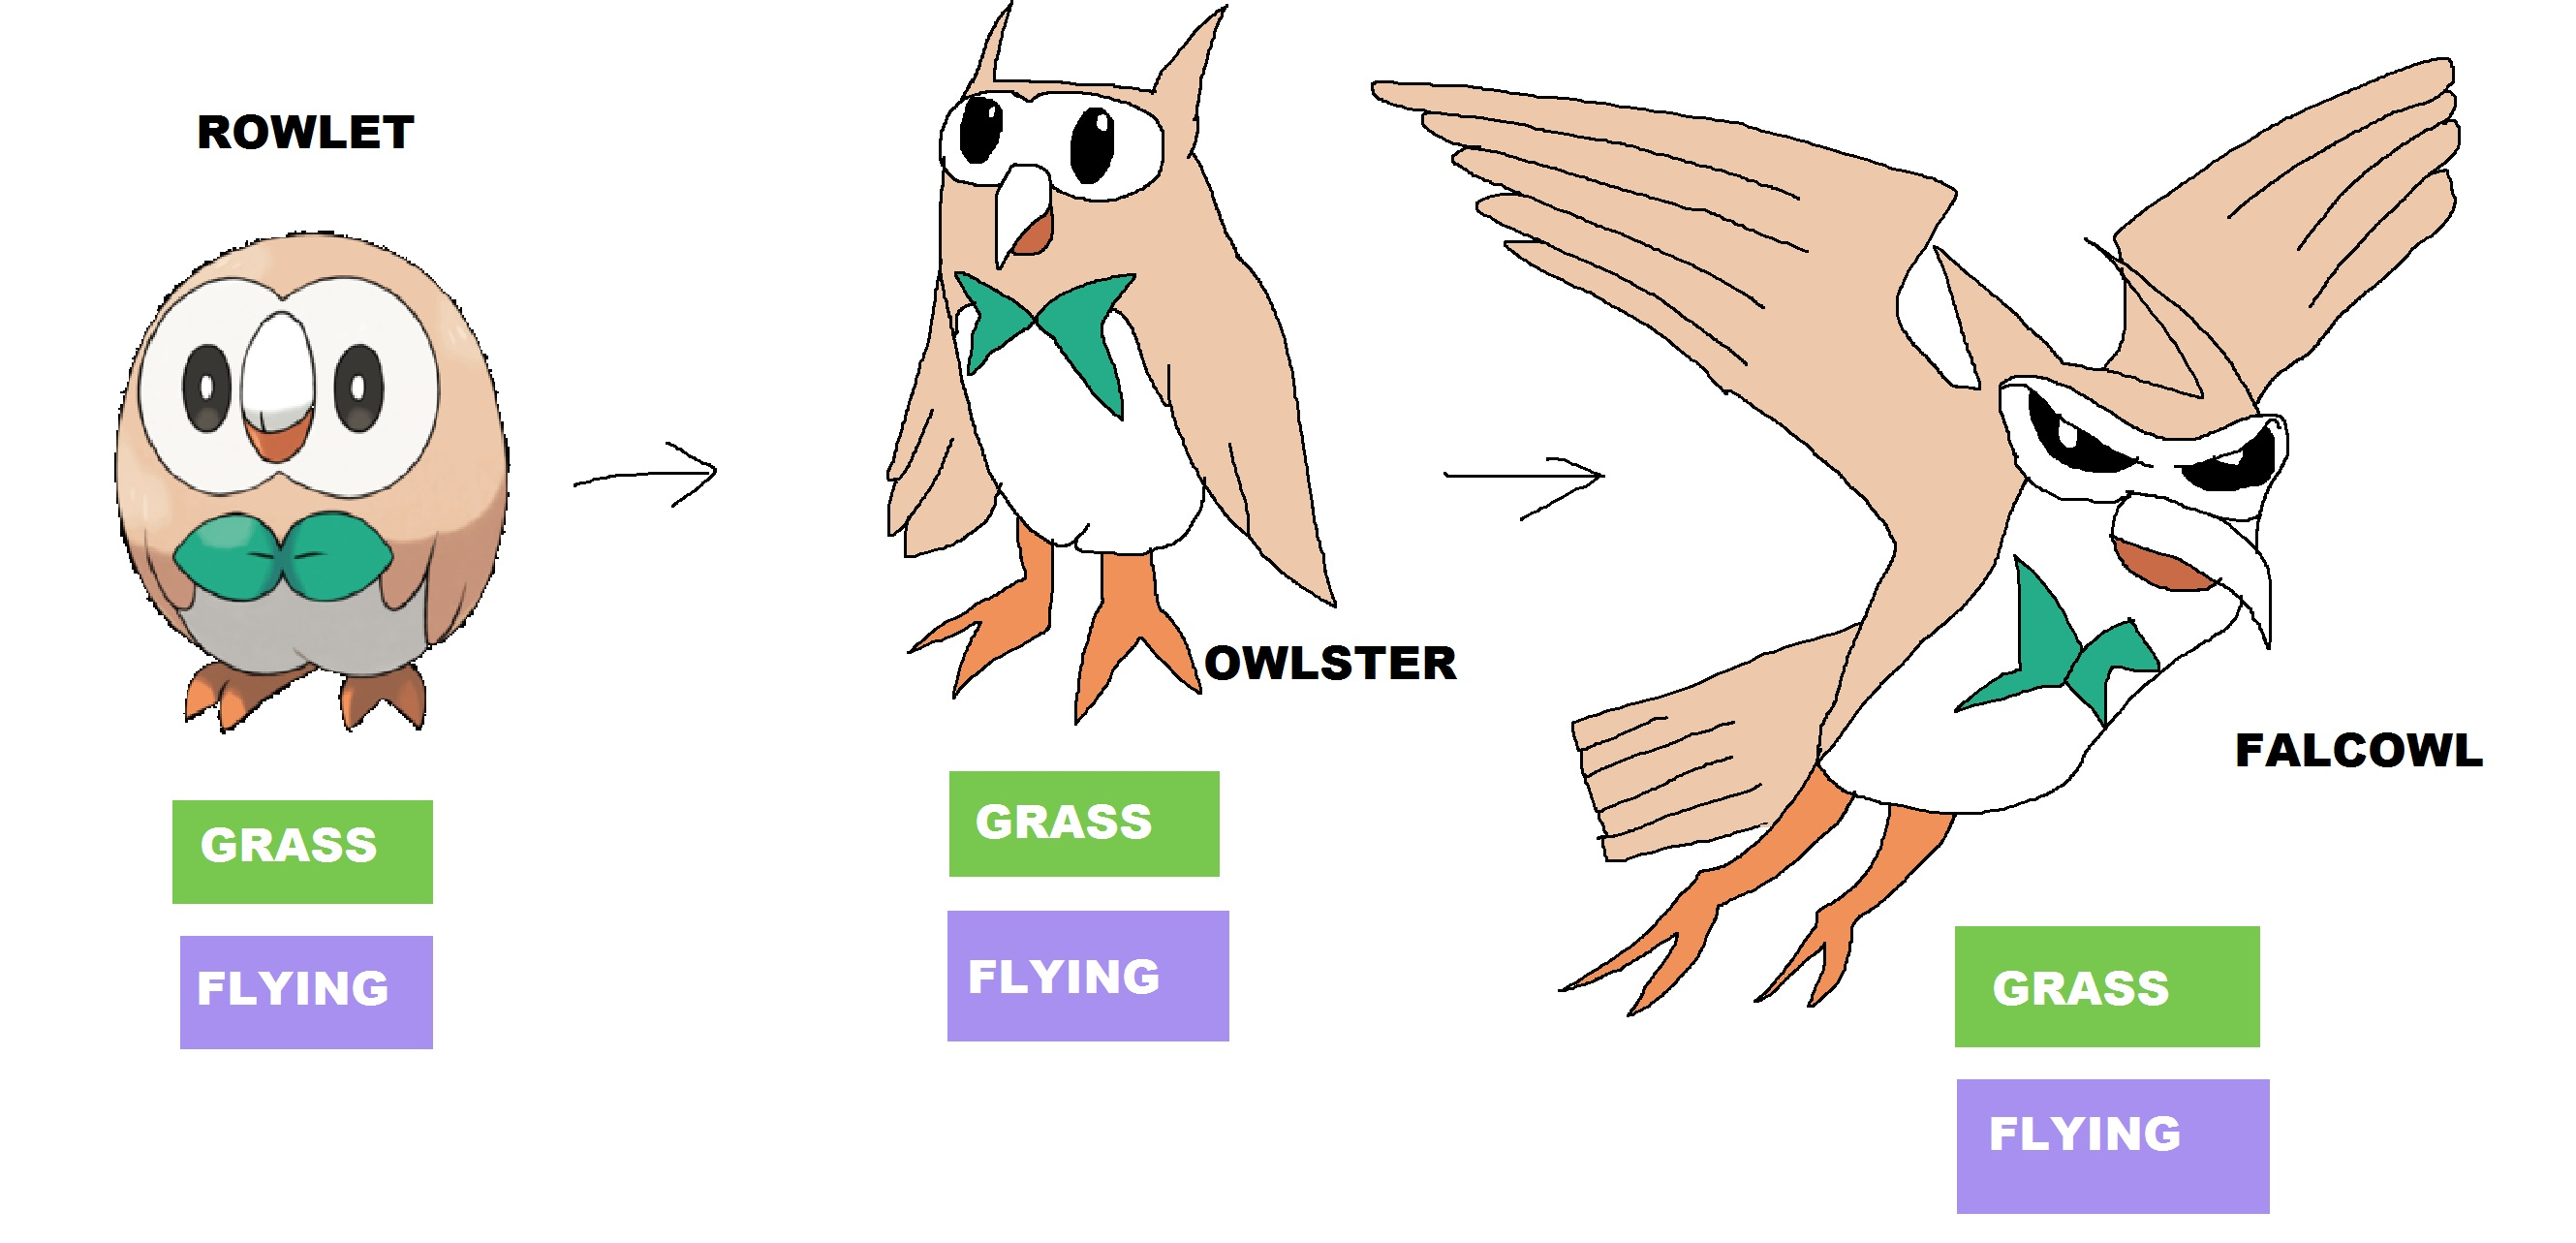 Rowlet's evolution by Rainbow-Dash-Rockz